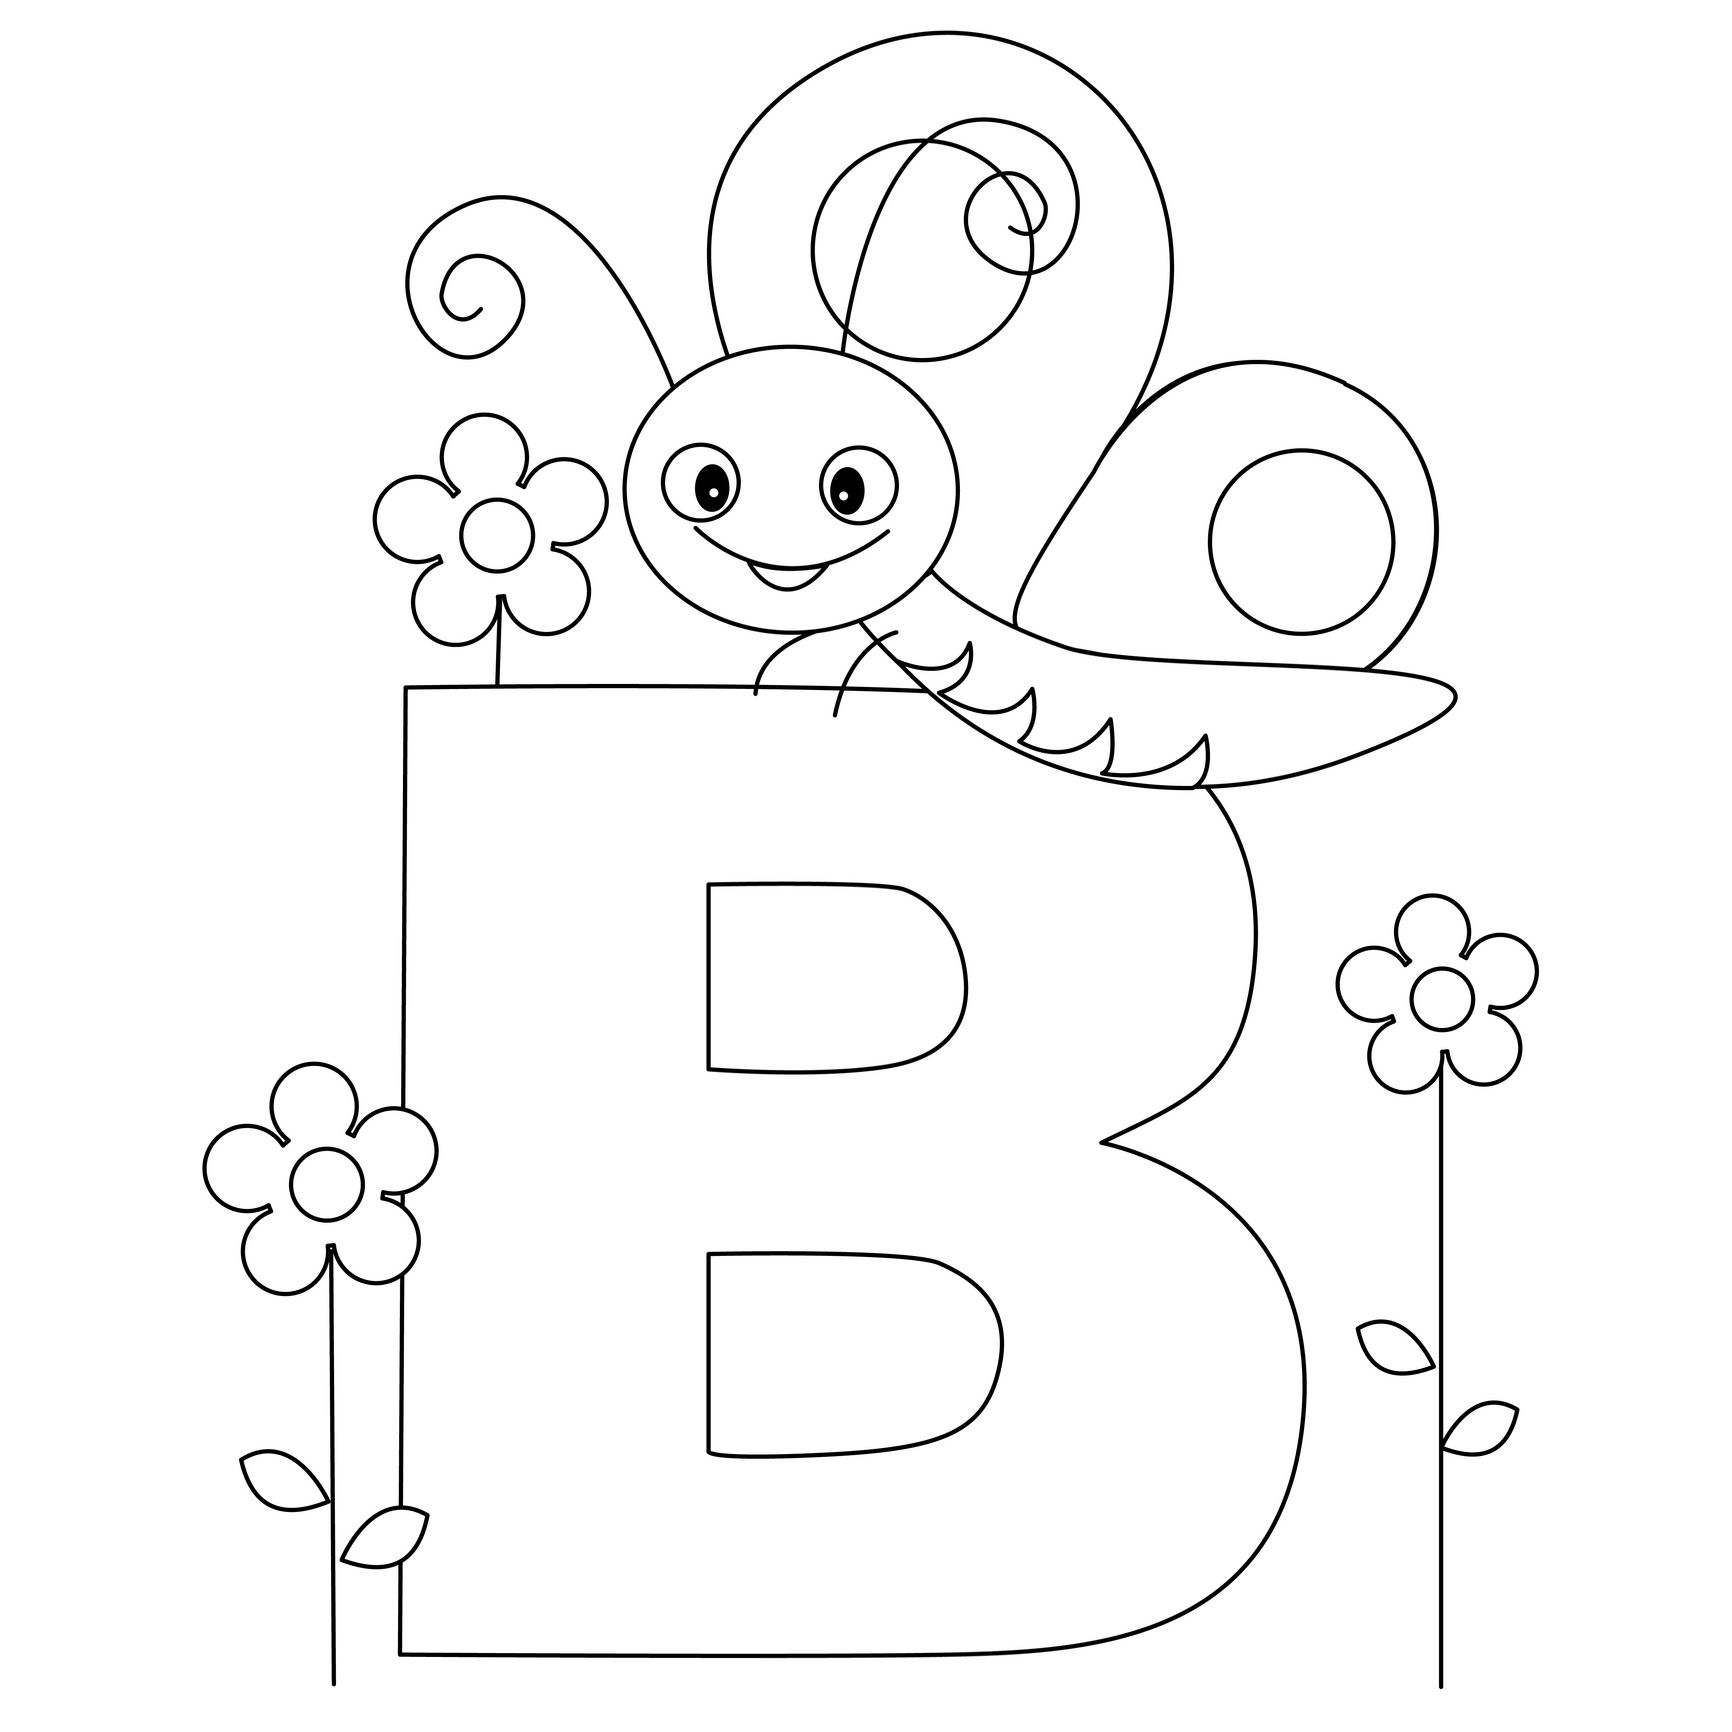 Animal Alphabet Letter B Is For Butterfly Here S A Simple